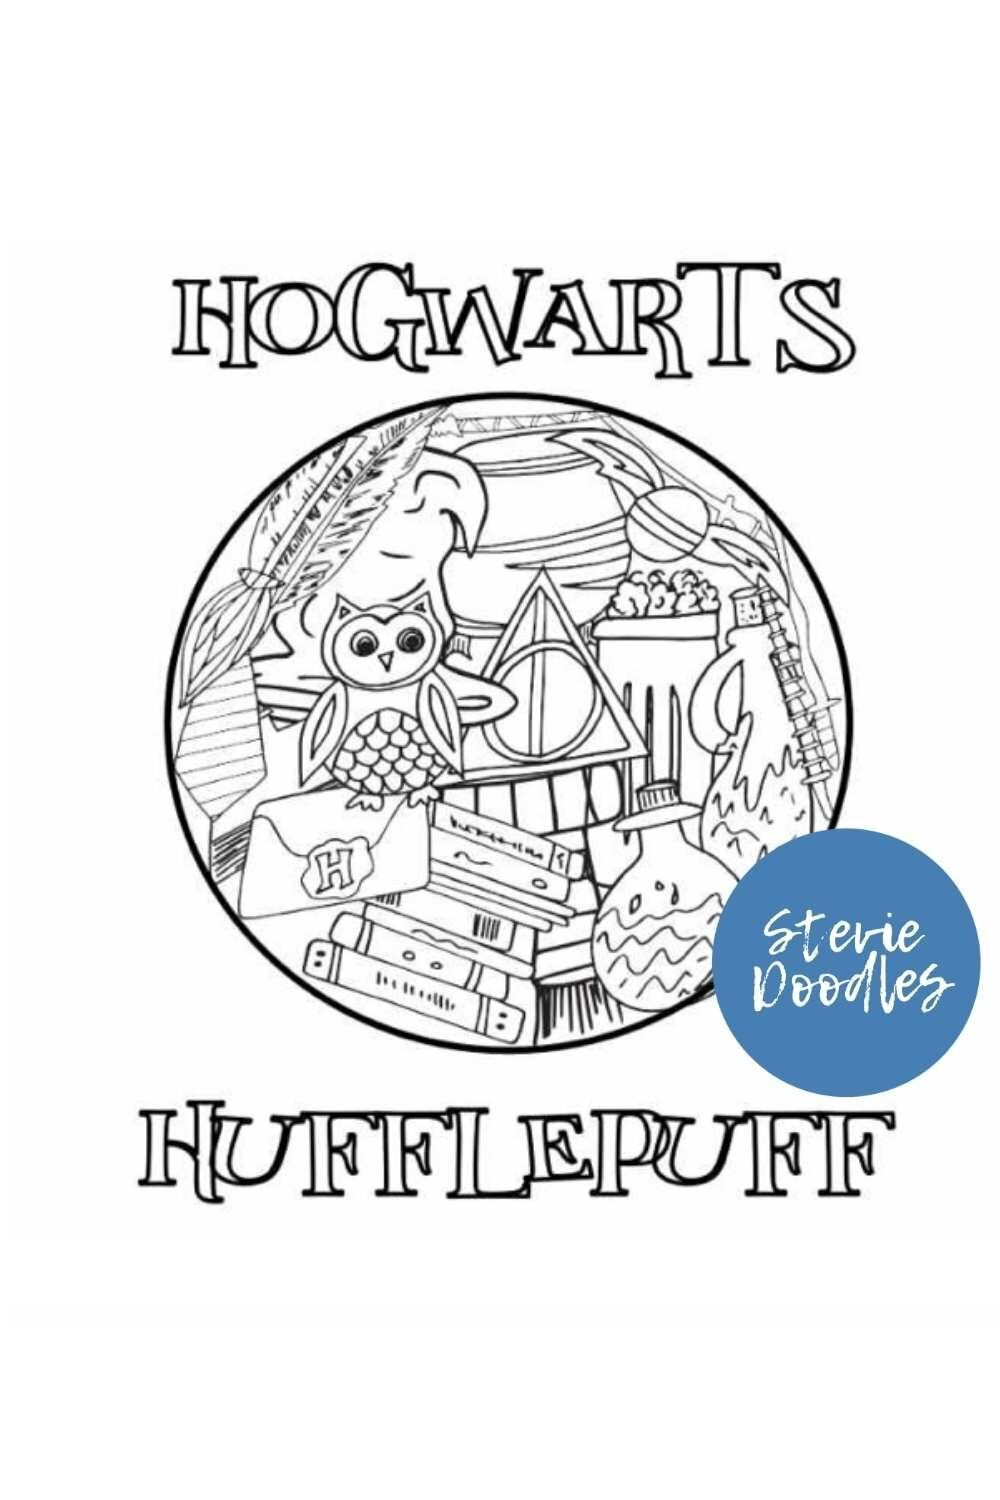 Free Printable Hufflepuff Coloring Pages Stevie Doodles In 2021 Harry Potter Coloring Pages Free Printable Coloring Pages Free Kids Coloring Pages [ 1500 x 1000 Pixel ]